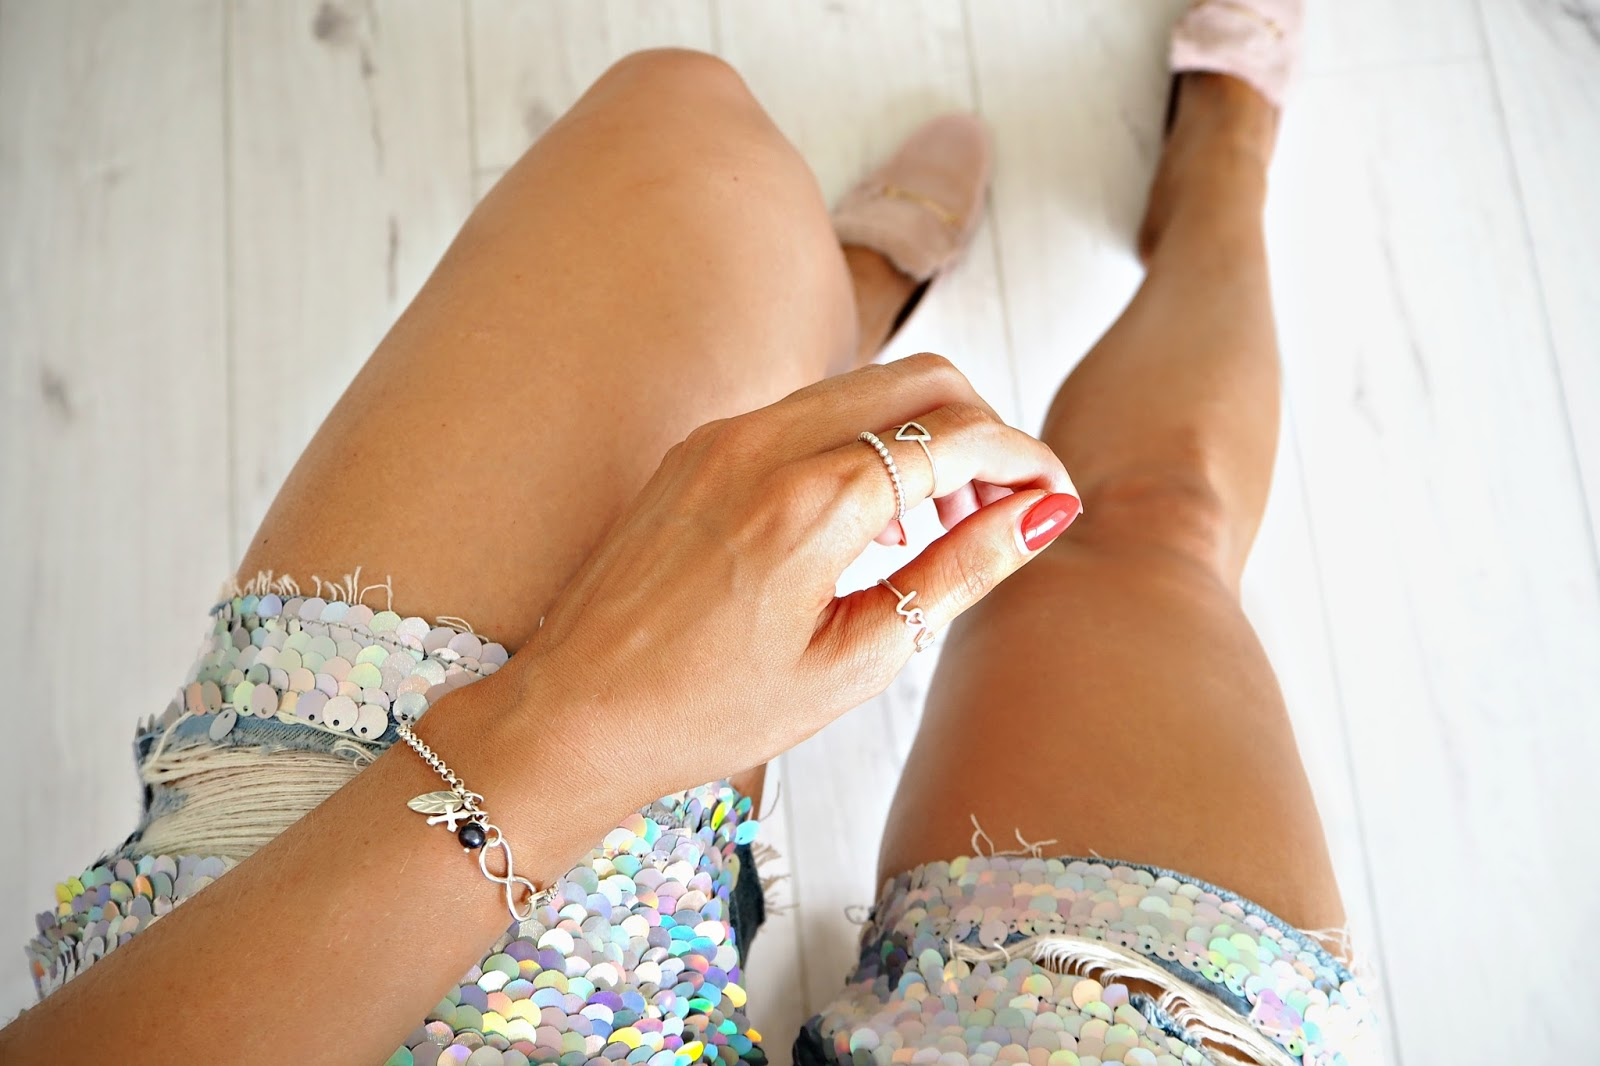 Jewellerybox.co.uk sterling silver bracelet and rings and mermaid shorts